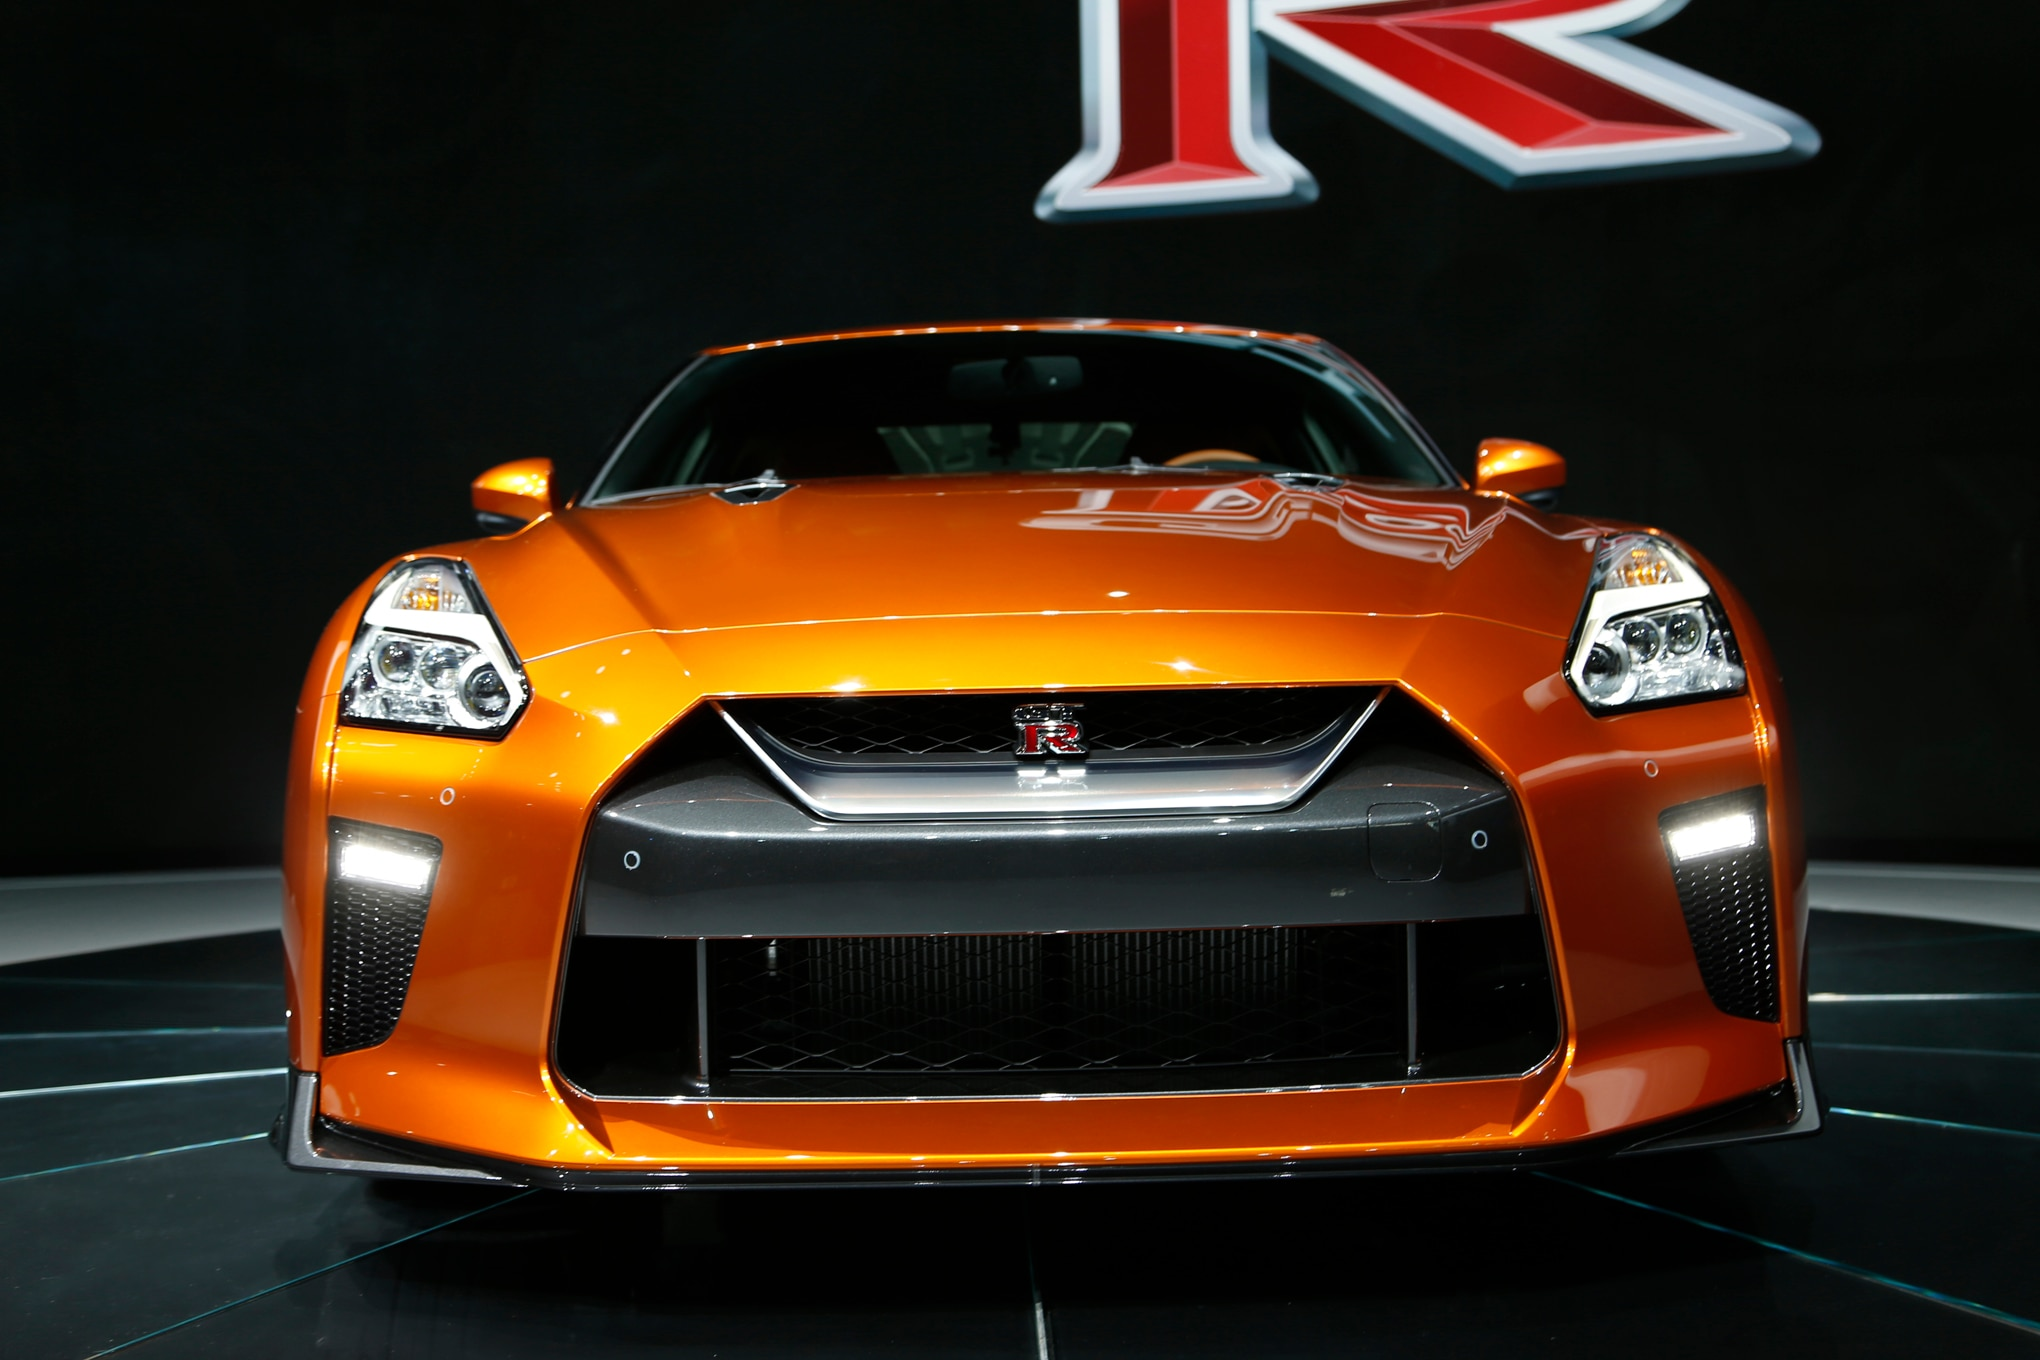 2017 Nissan GT-R: The Refreshed R35.5 Debuts in New York